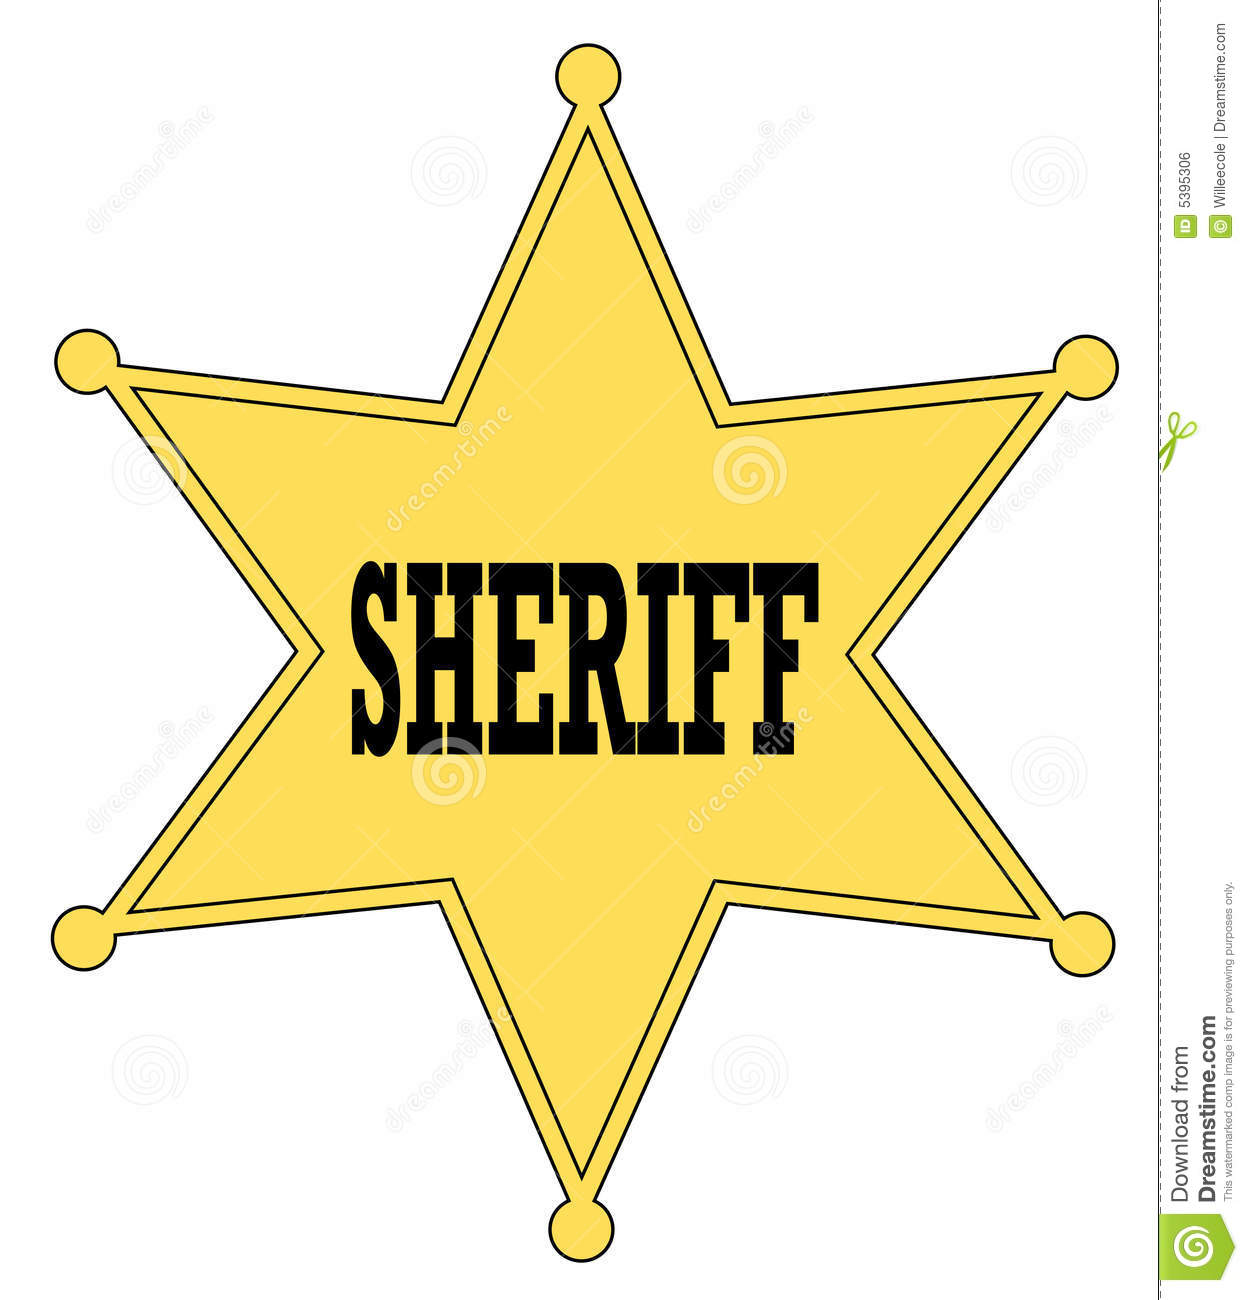 1e848cb2e7b Sheriff badge stock vector. Illustration of cowboy